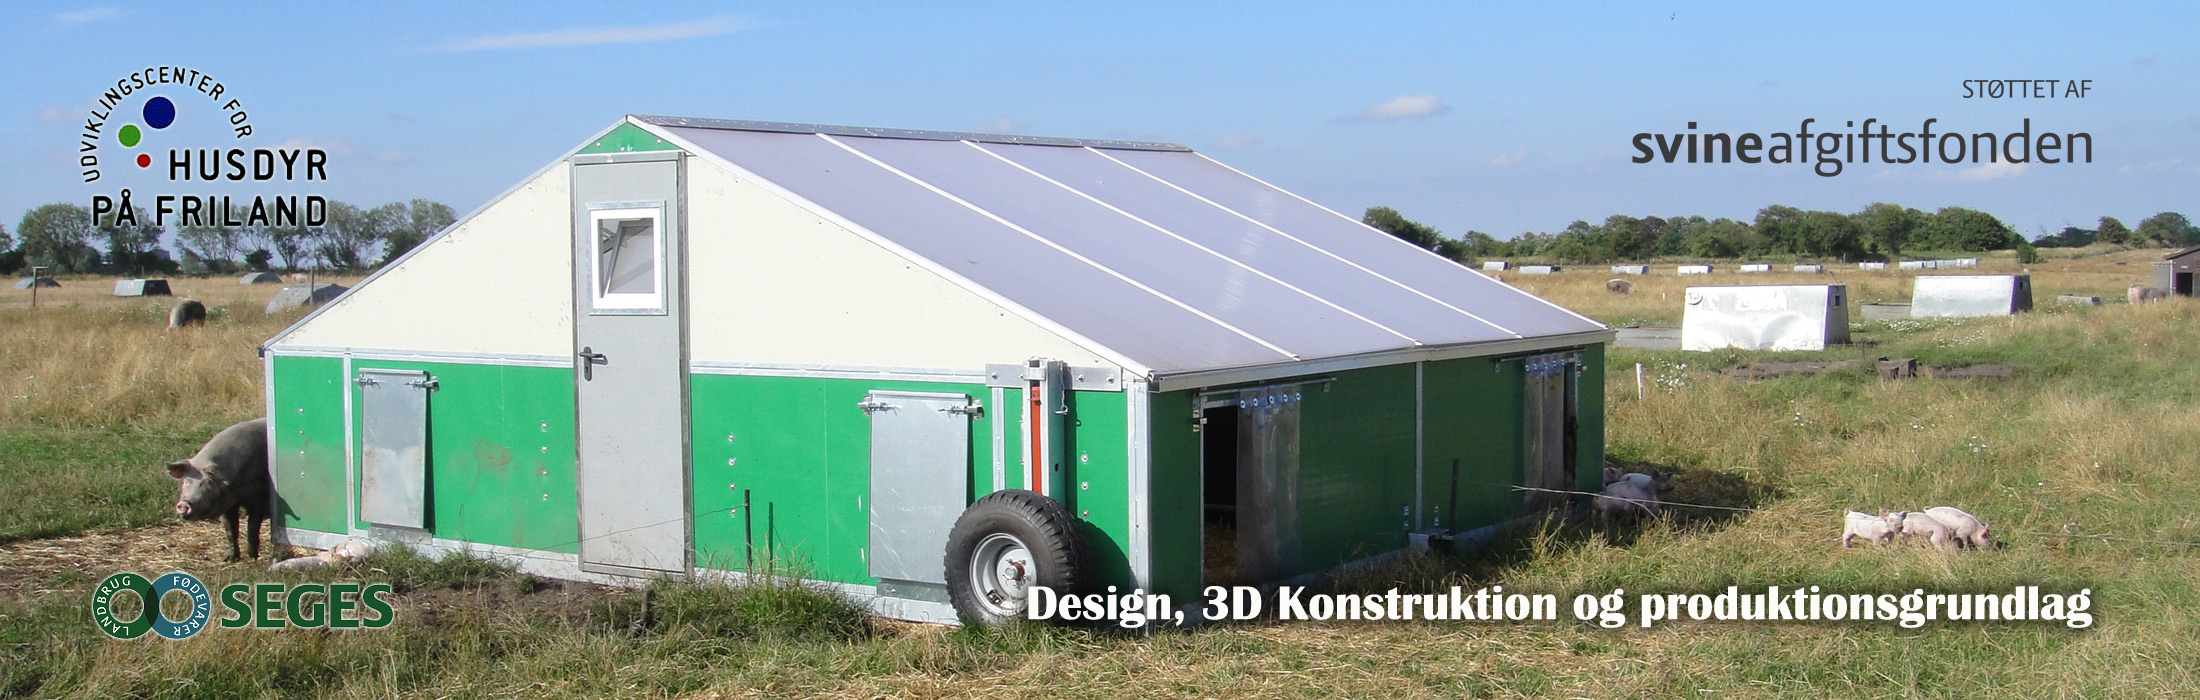 Design-Storhytter-Kent-Laursen industrielt design